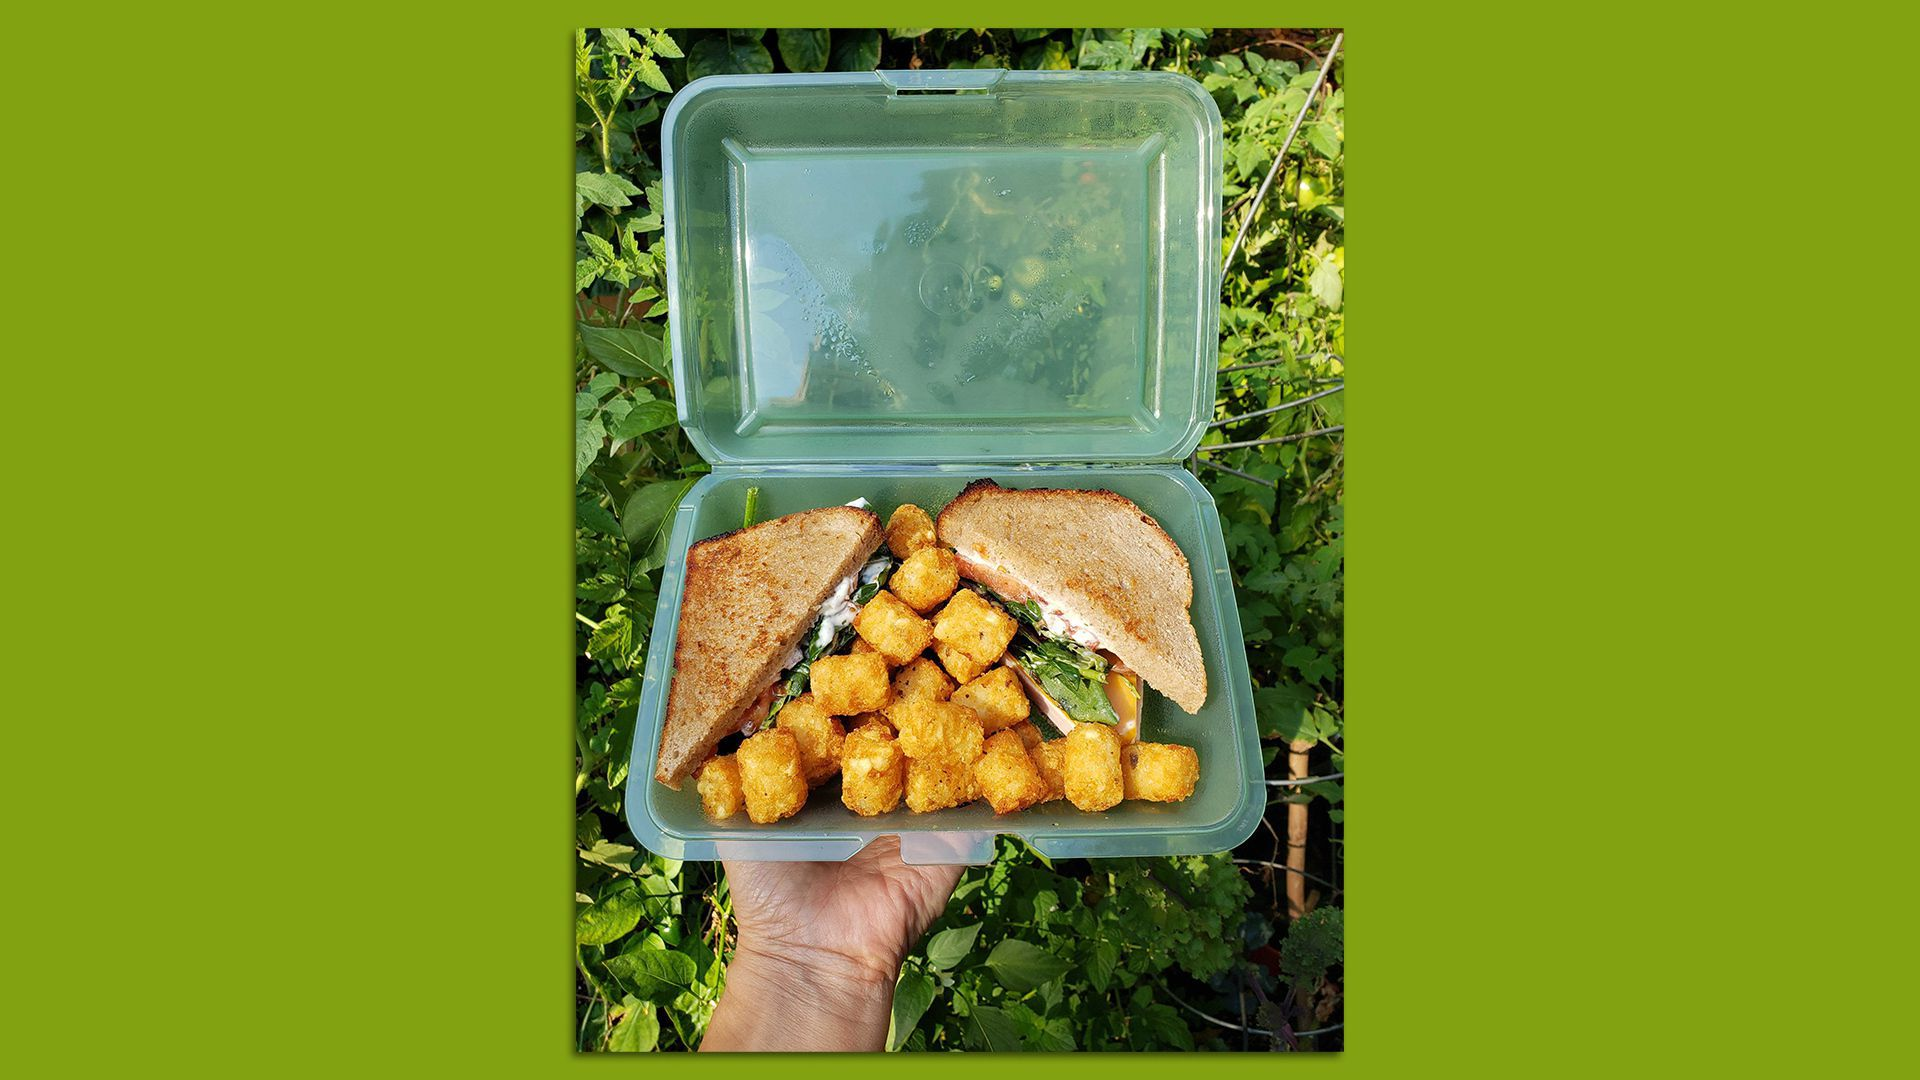 A returnable takeout container with a sandwich and tater tots inside.